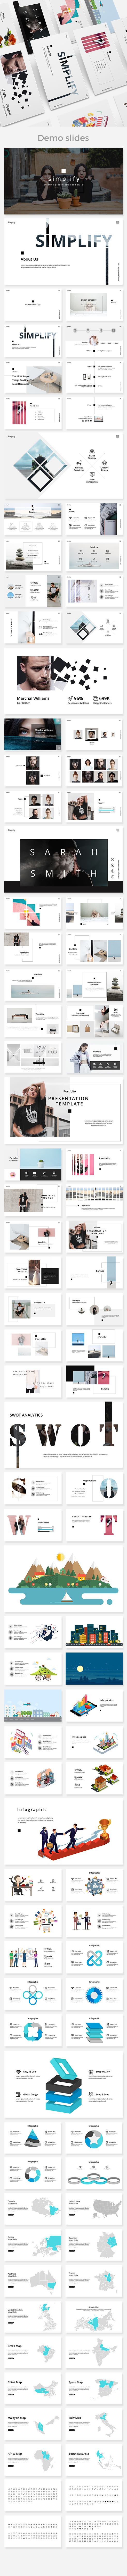 Simplify Minimal Keynote Template - Creative Keynote Templates